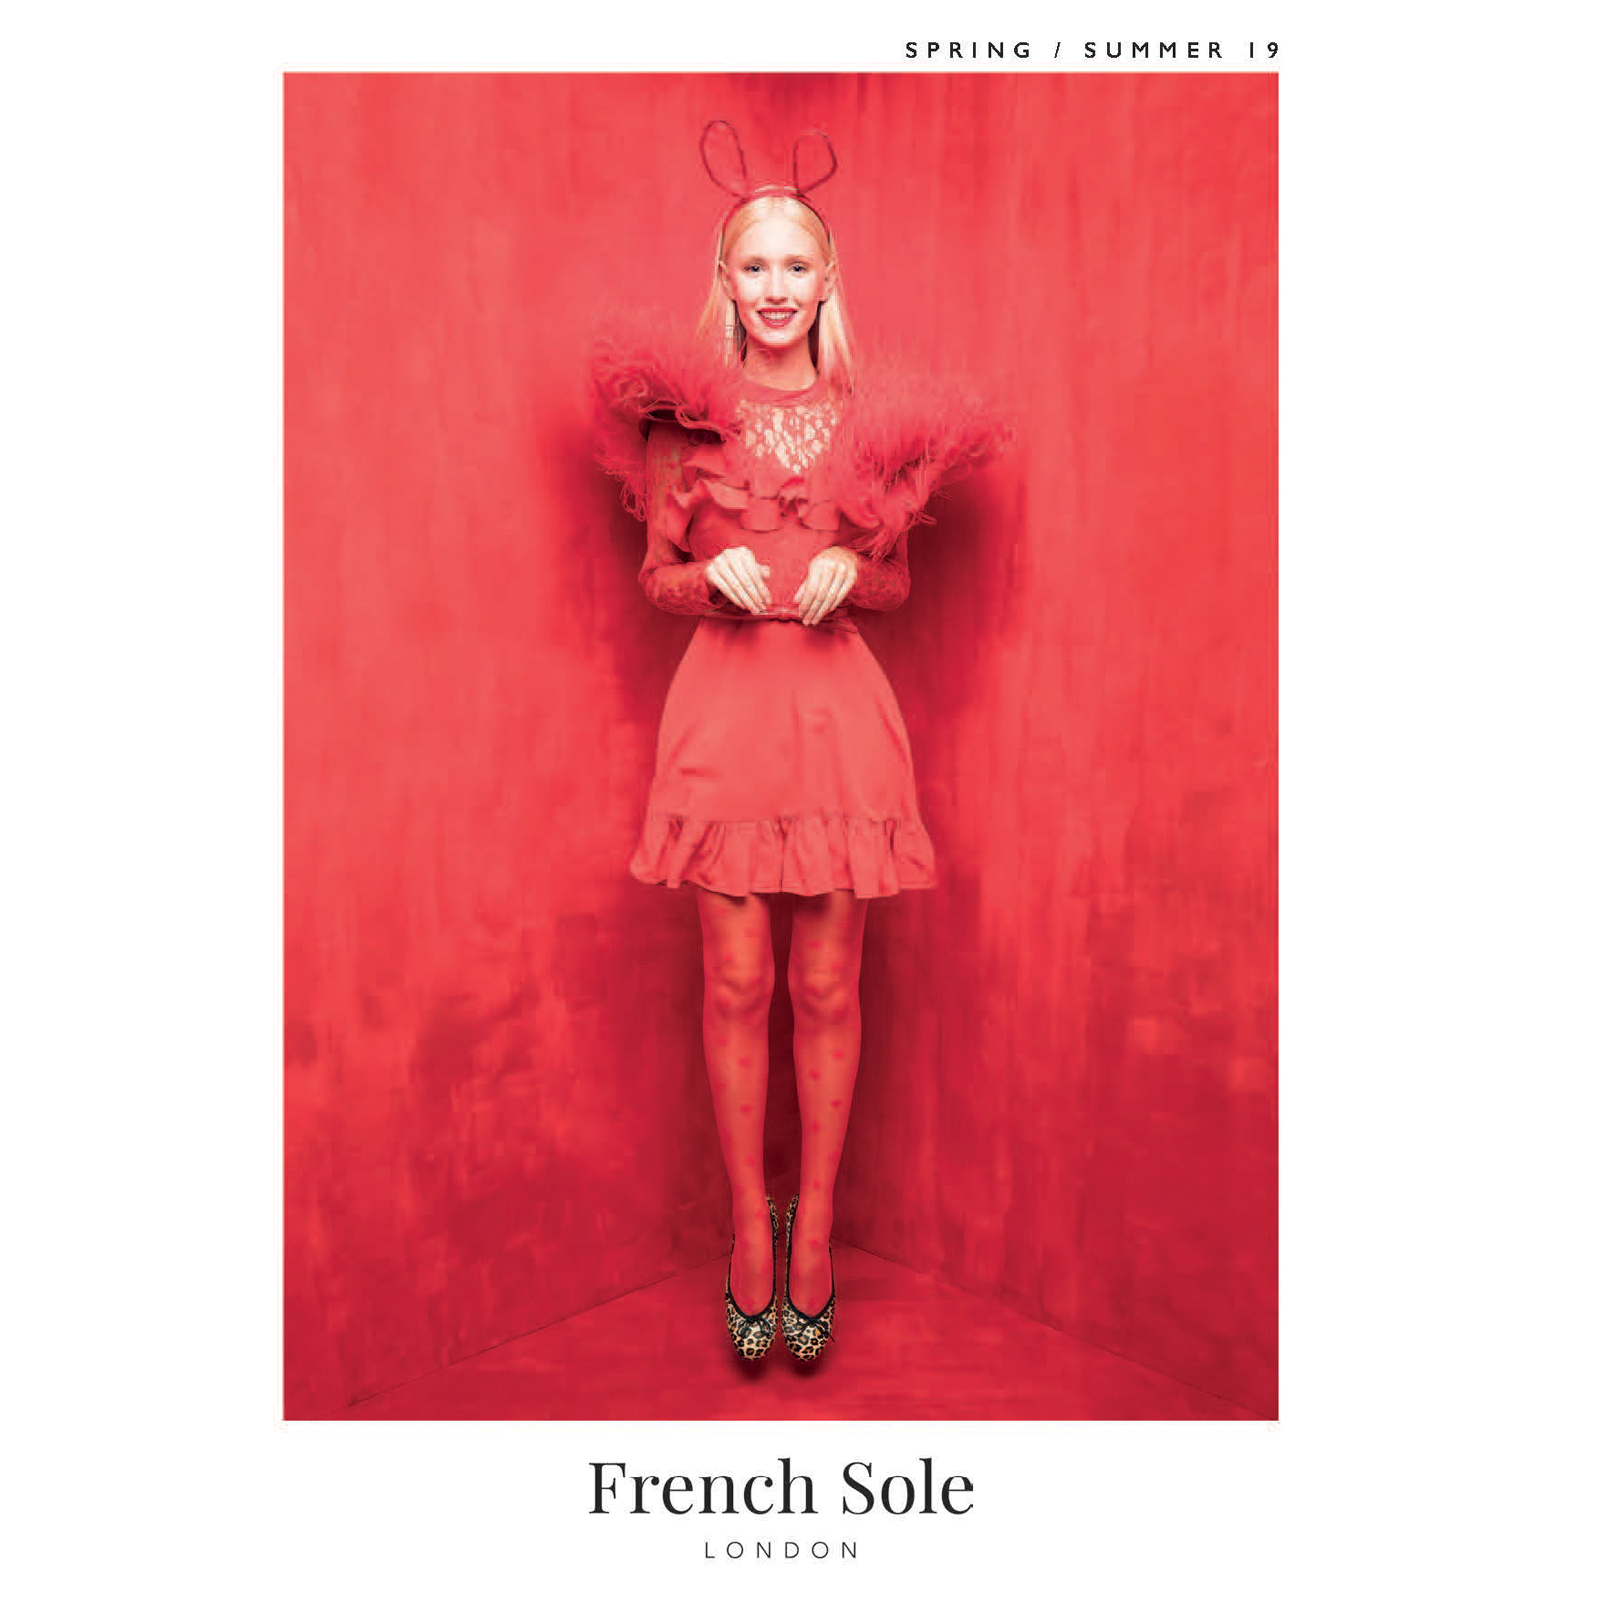 French Sole SS19 Campaign